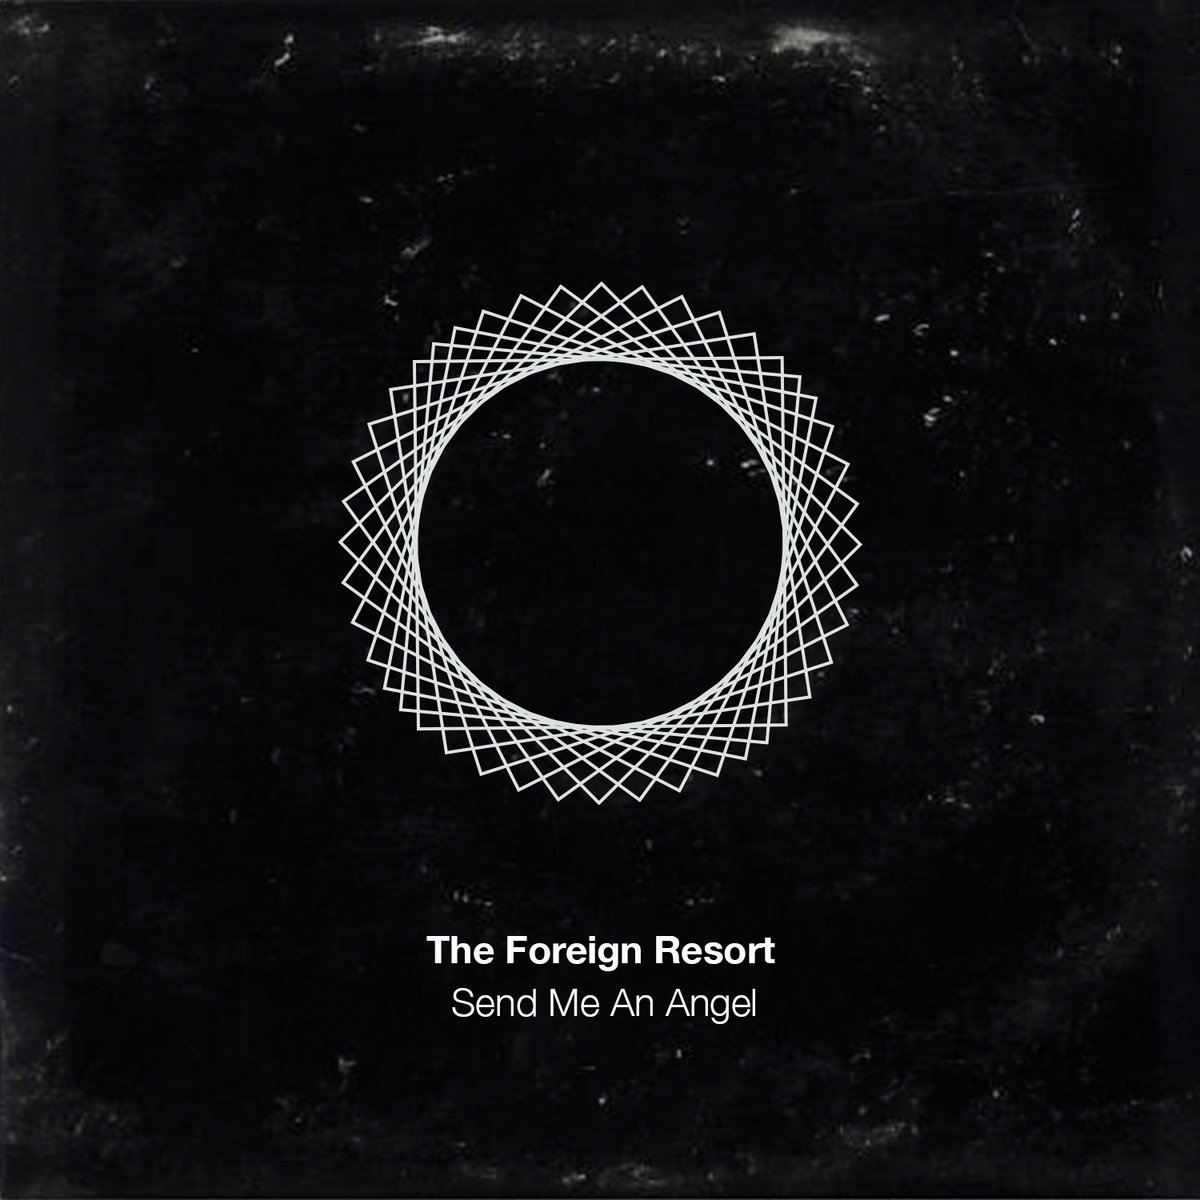 Post-punk shivers – The Foreign Resort – Send Me An Angel (Real Life cover)